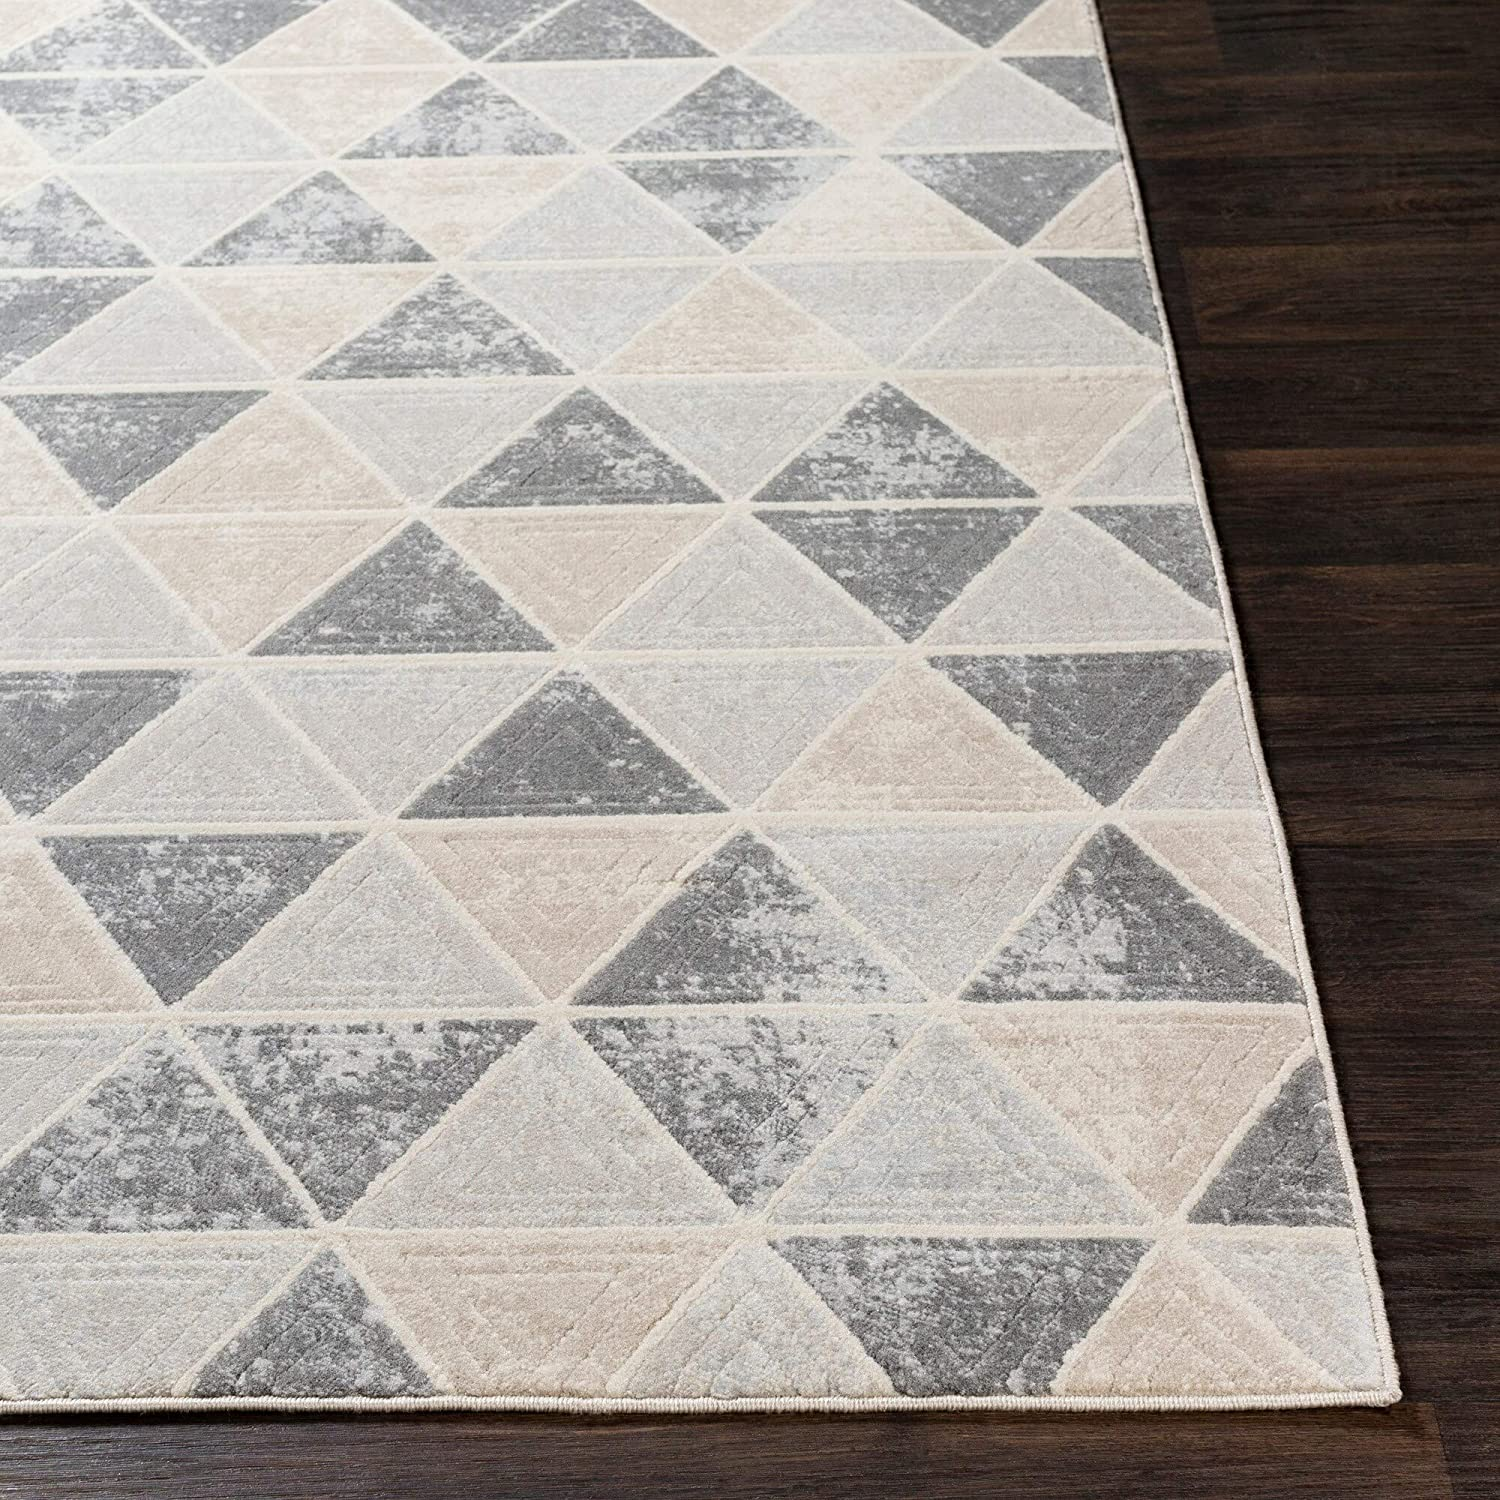 "Taupe Distressed Contemporary Area Rug 5'3"" X 7'3"" Brown Grey Geometric Modern Polypropylene Synthetic Latex Free Pet Friendly Stain Resistant"